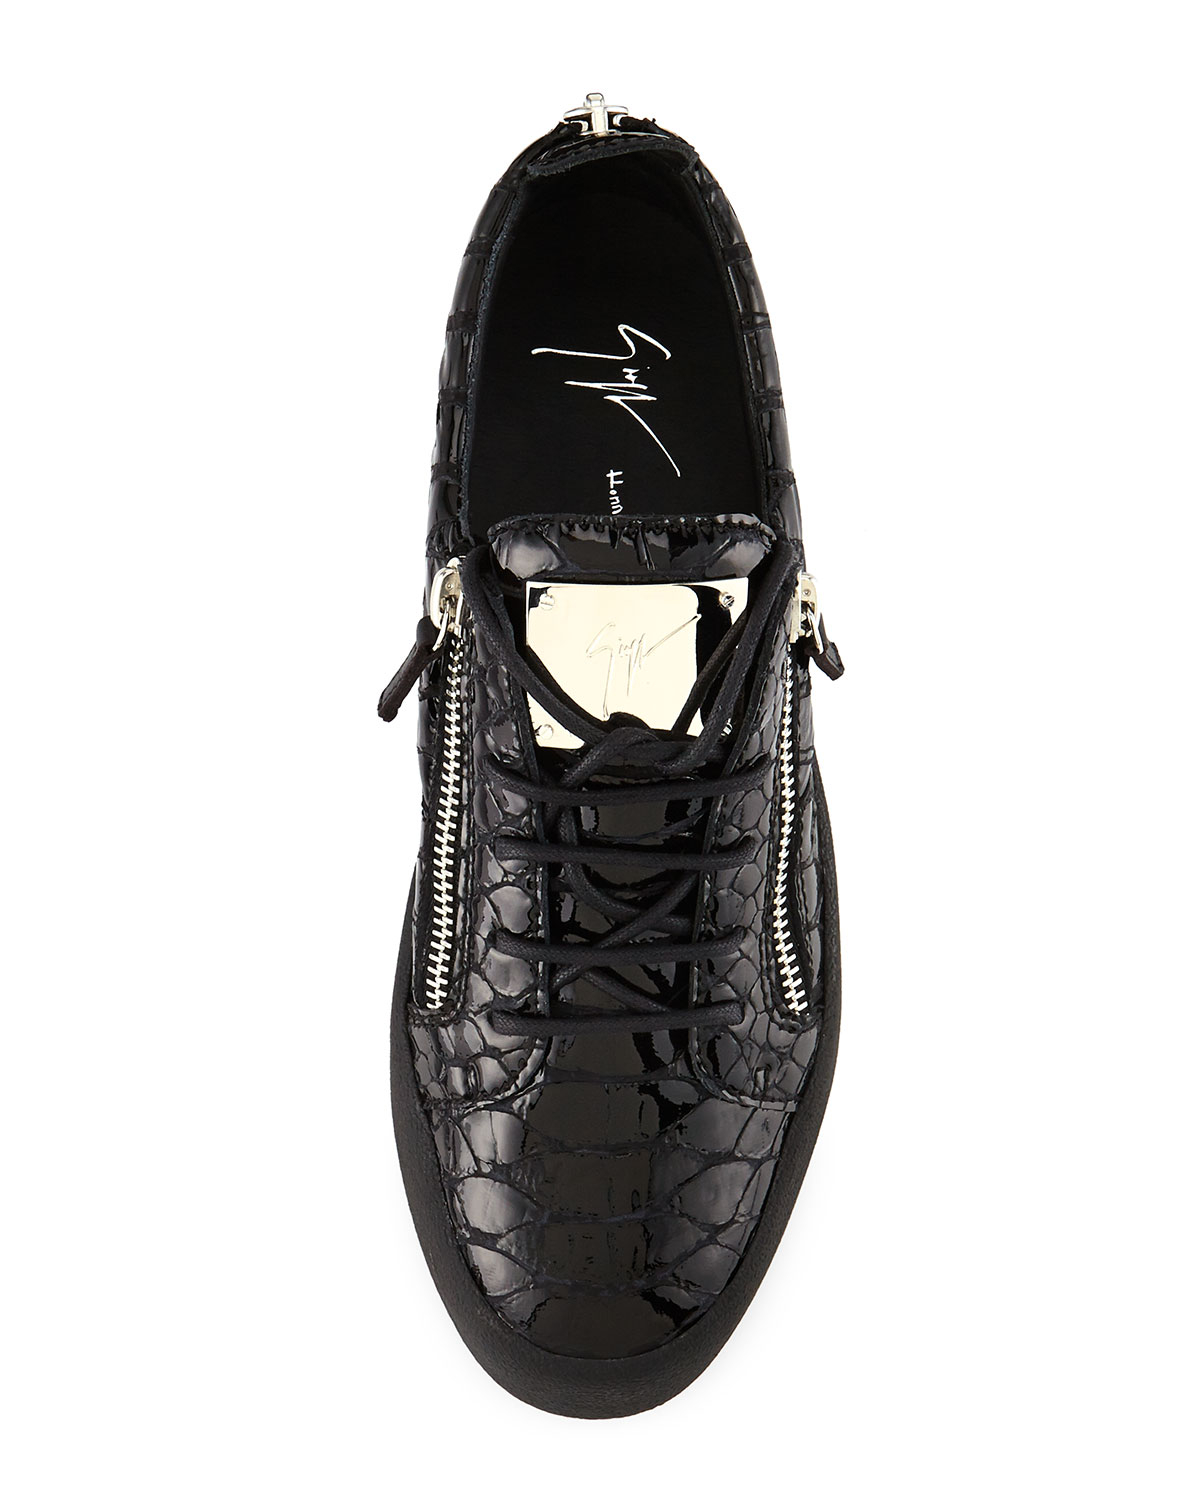 76e0d72796c1d Giuseppe Zanotti Crocodile-Embossed Low-Top Sneakers in Black for ...